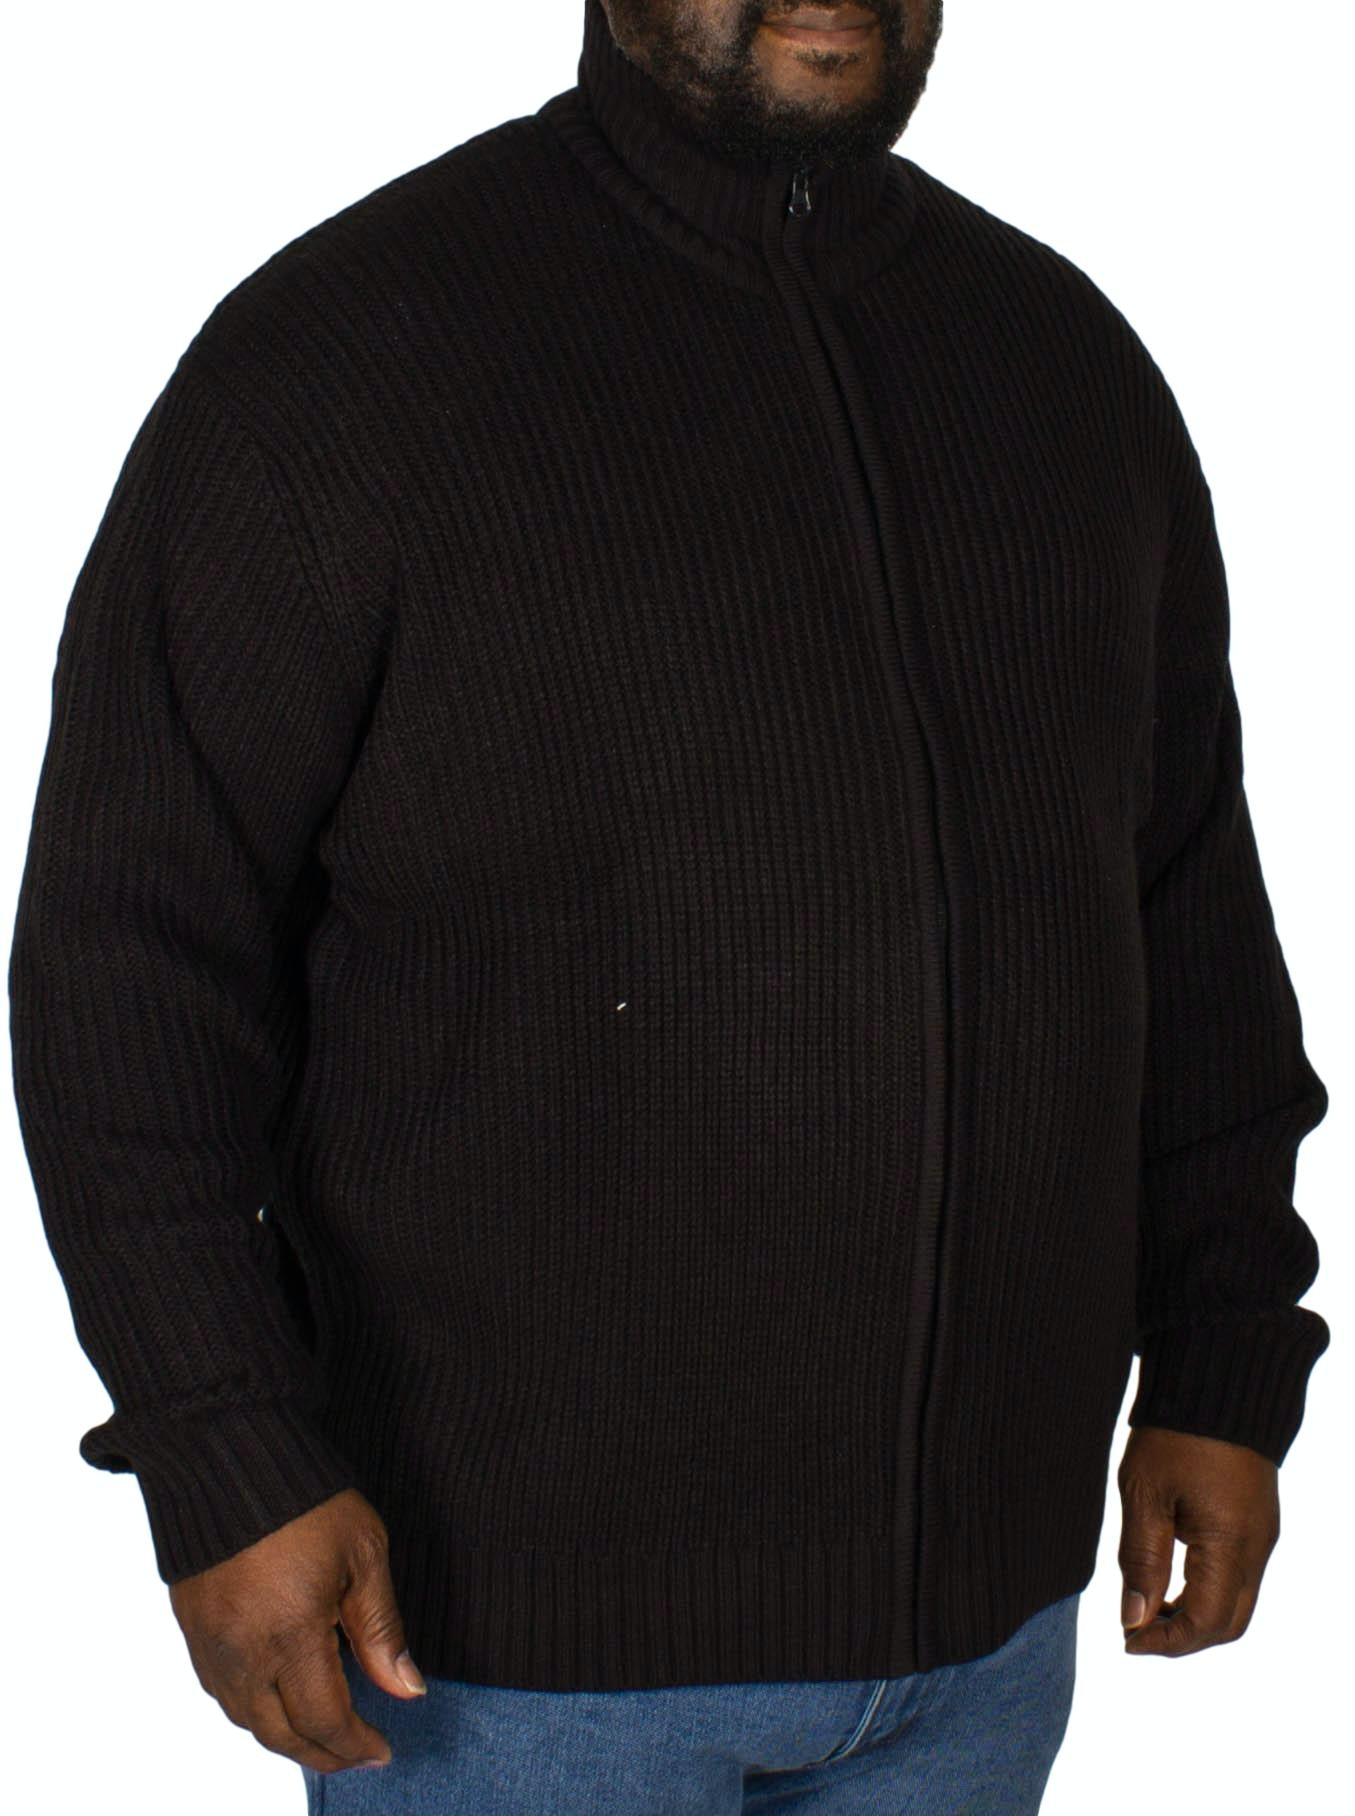 Metaphor Ribbed Zipped Knitted Sweater Black